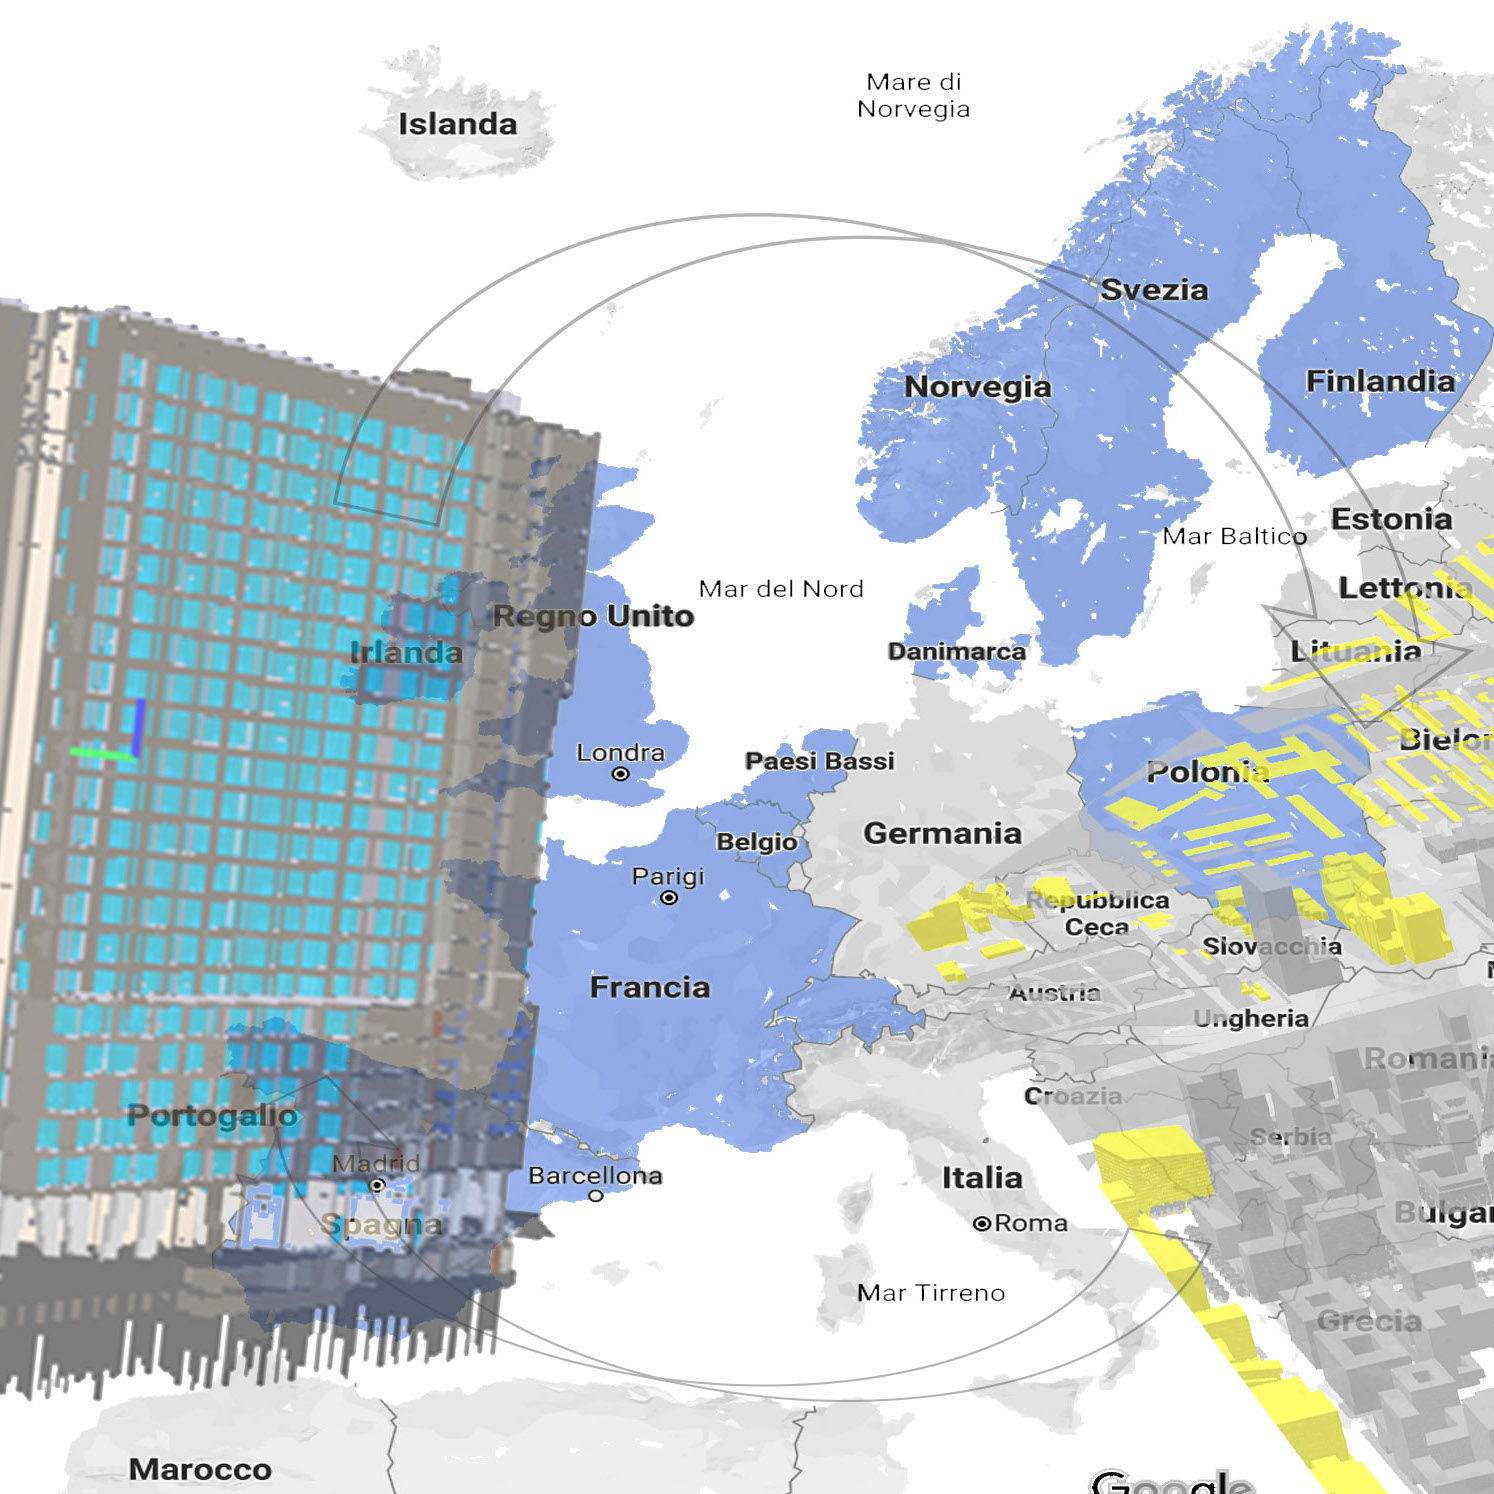 3D geoinformation at TU Delft